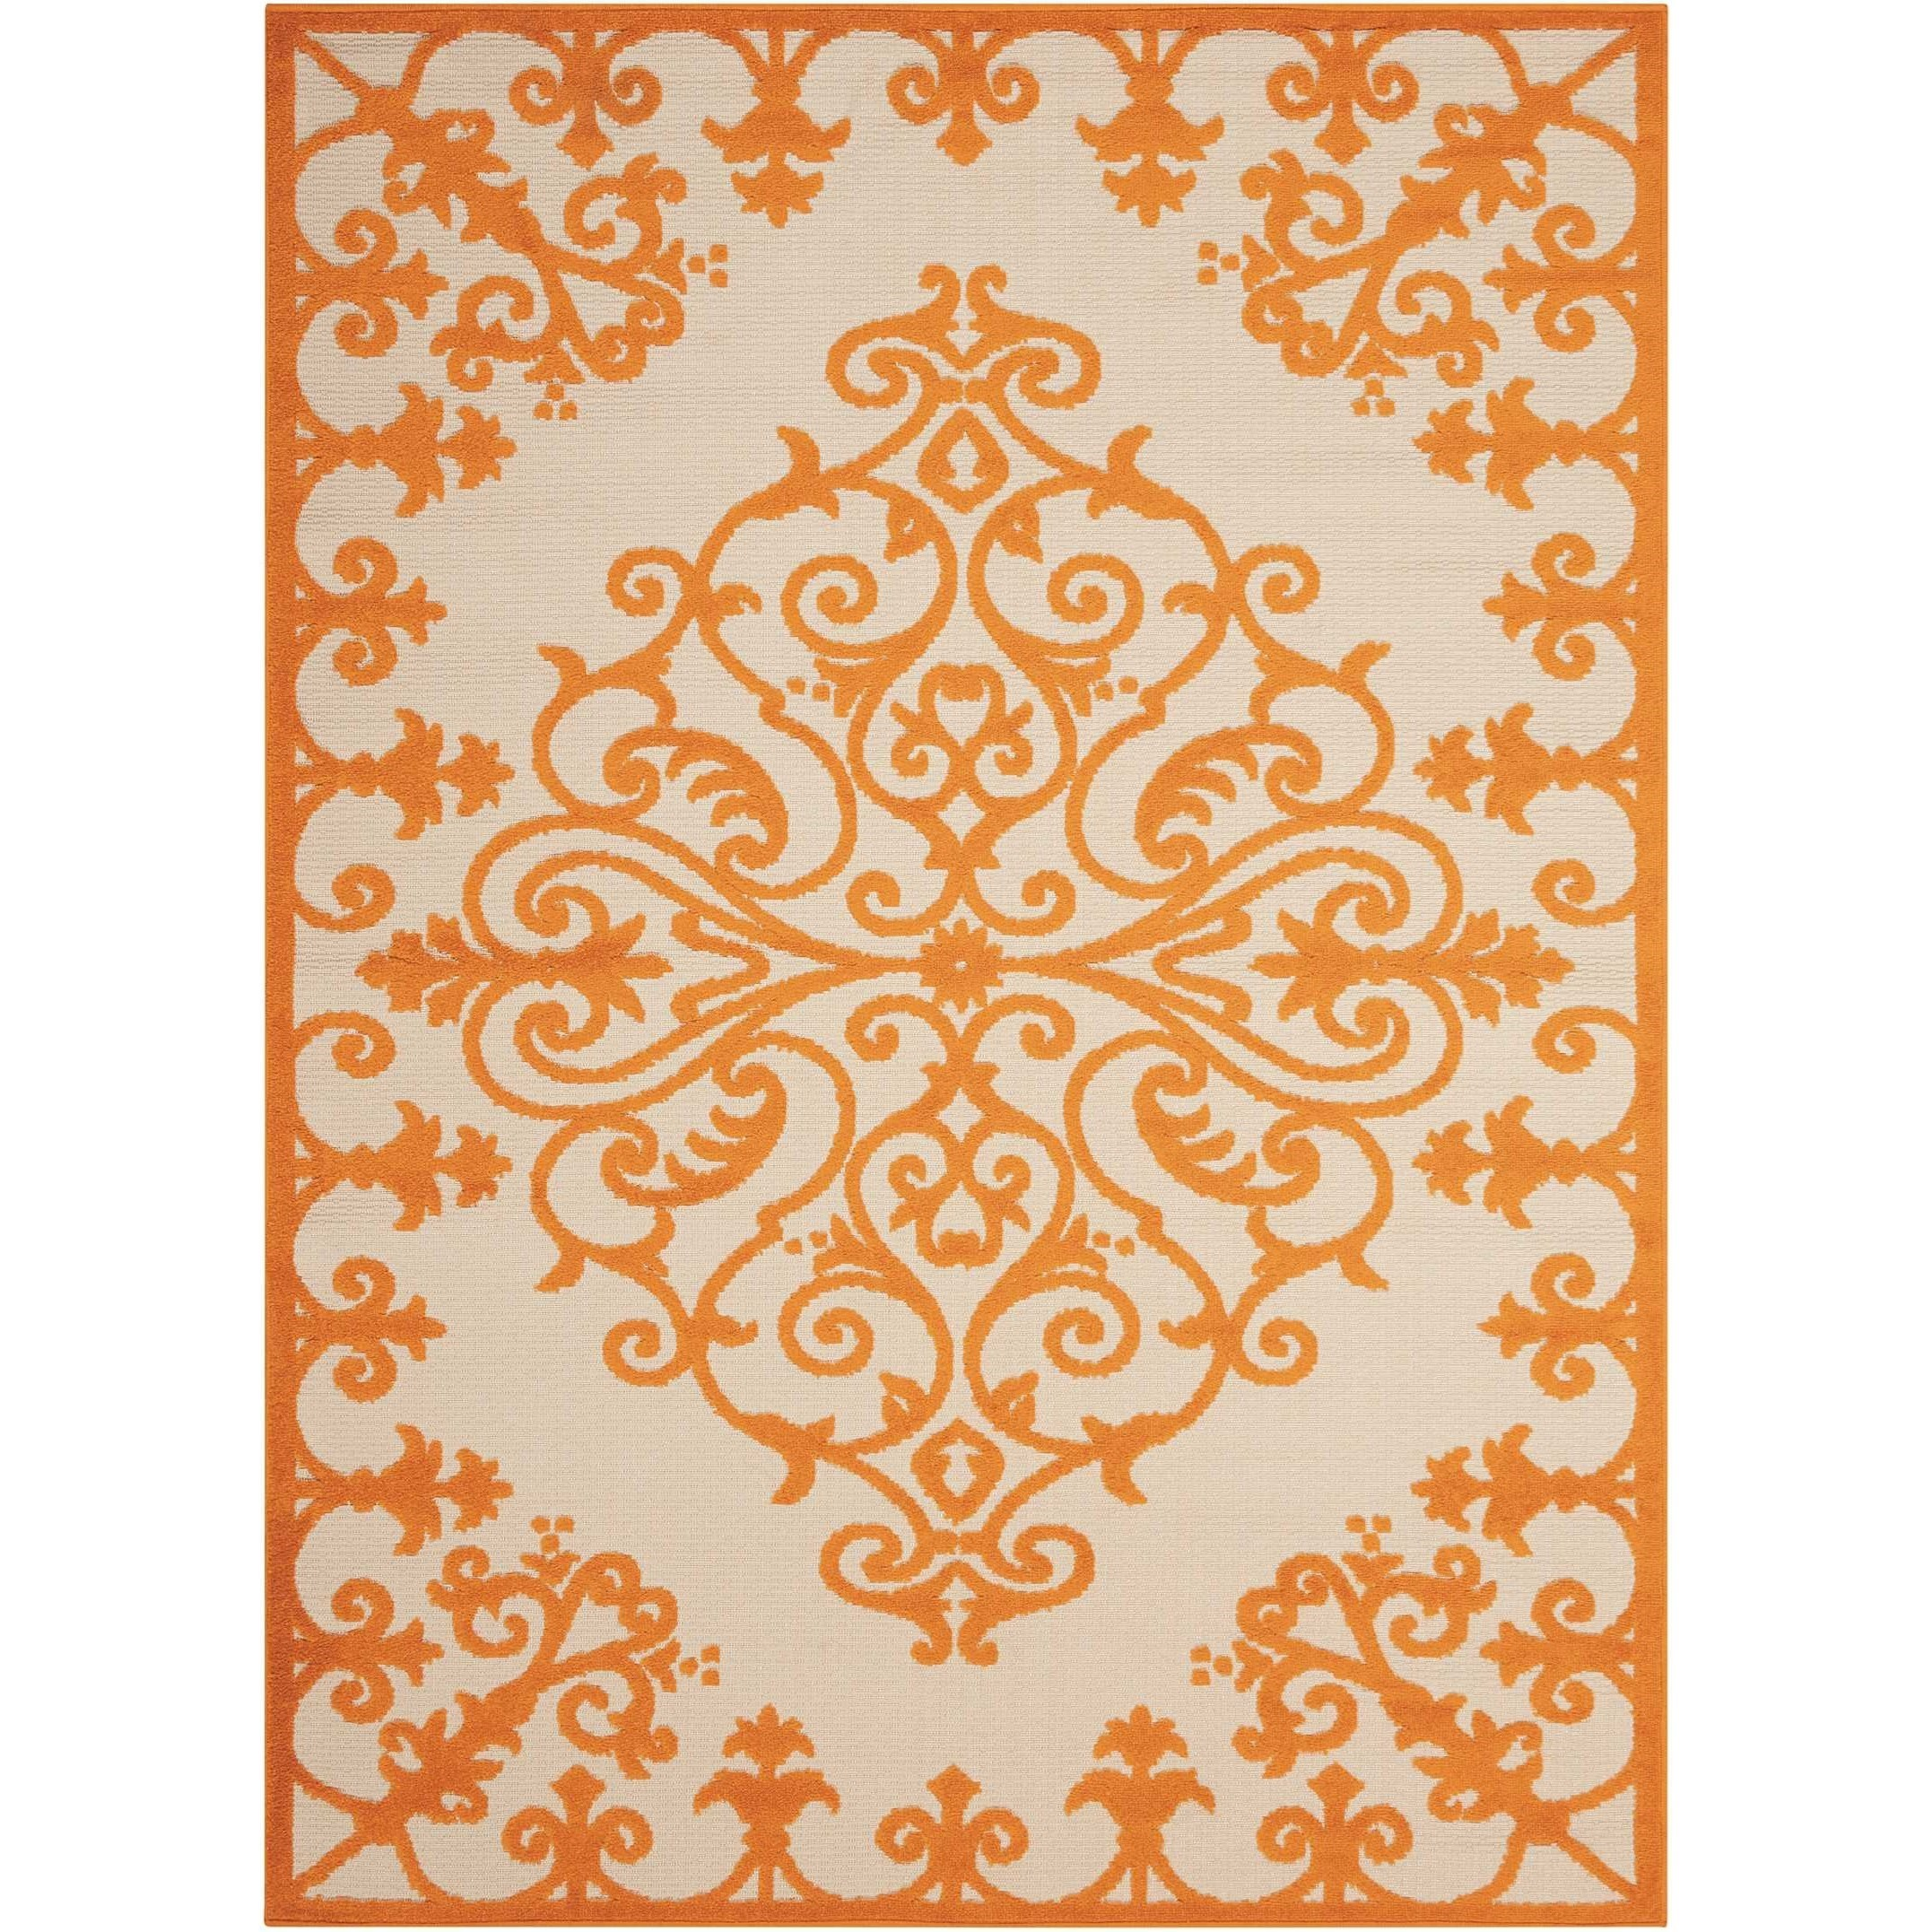 """Aloha 9'6"""" x 13' Orange Rectangle Rug by Nourison at Home Collections Furniture"""